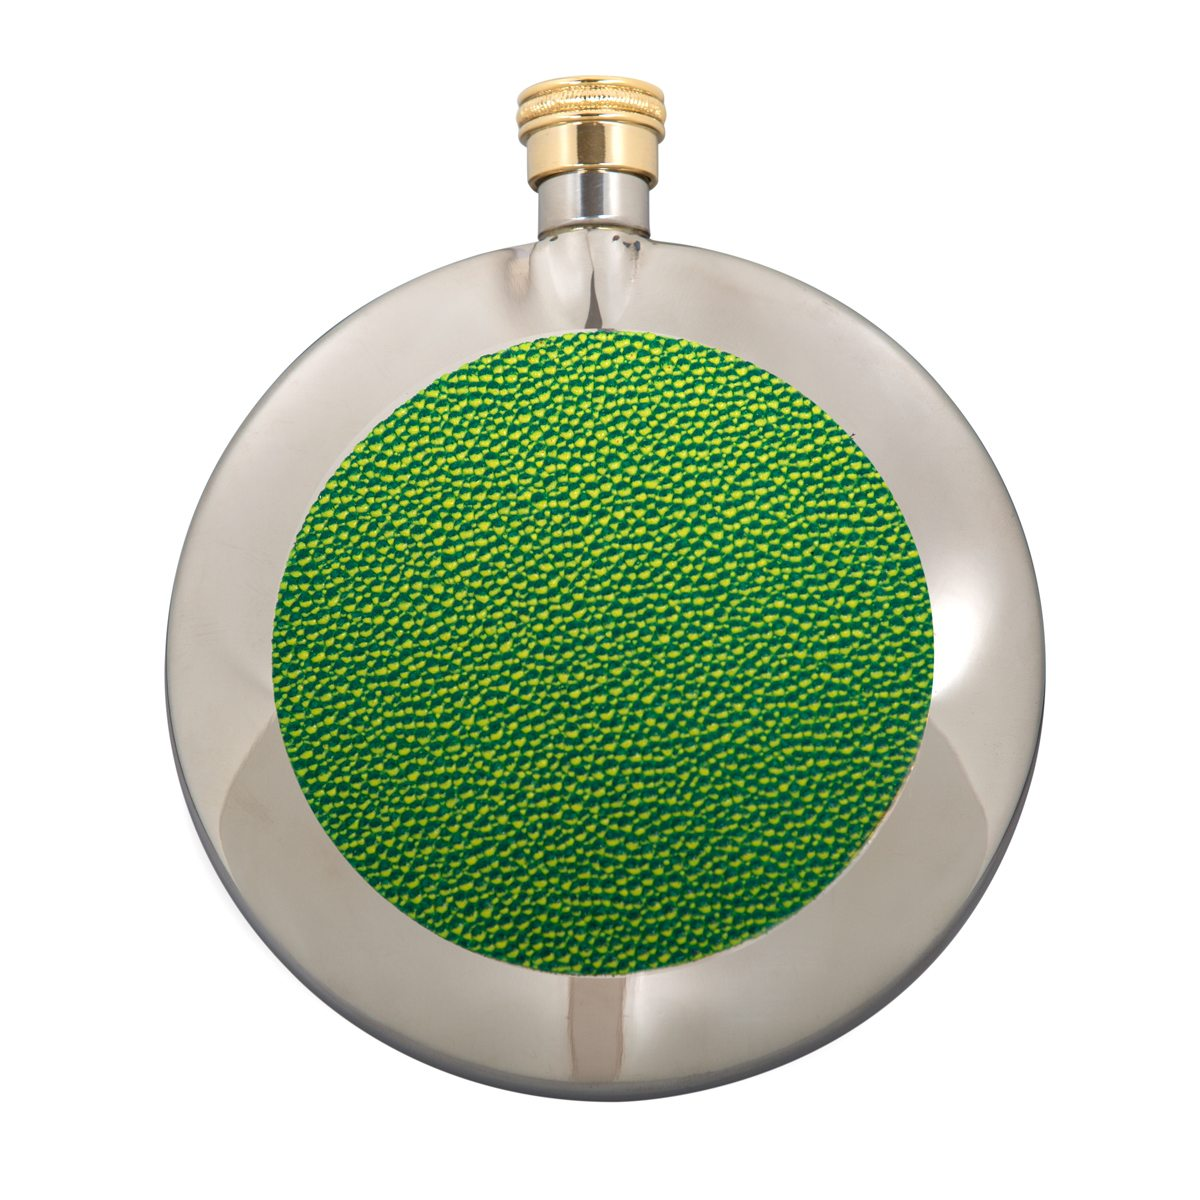 a green stainless steel round 6 oz hip flask by Marlborough of England